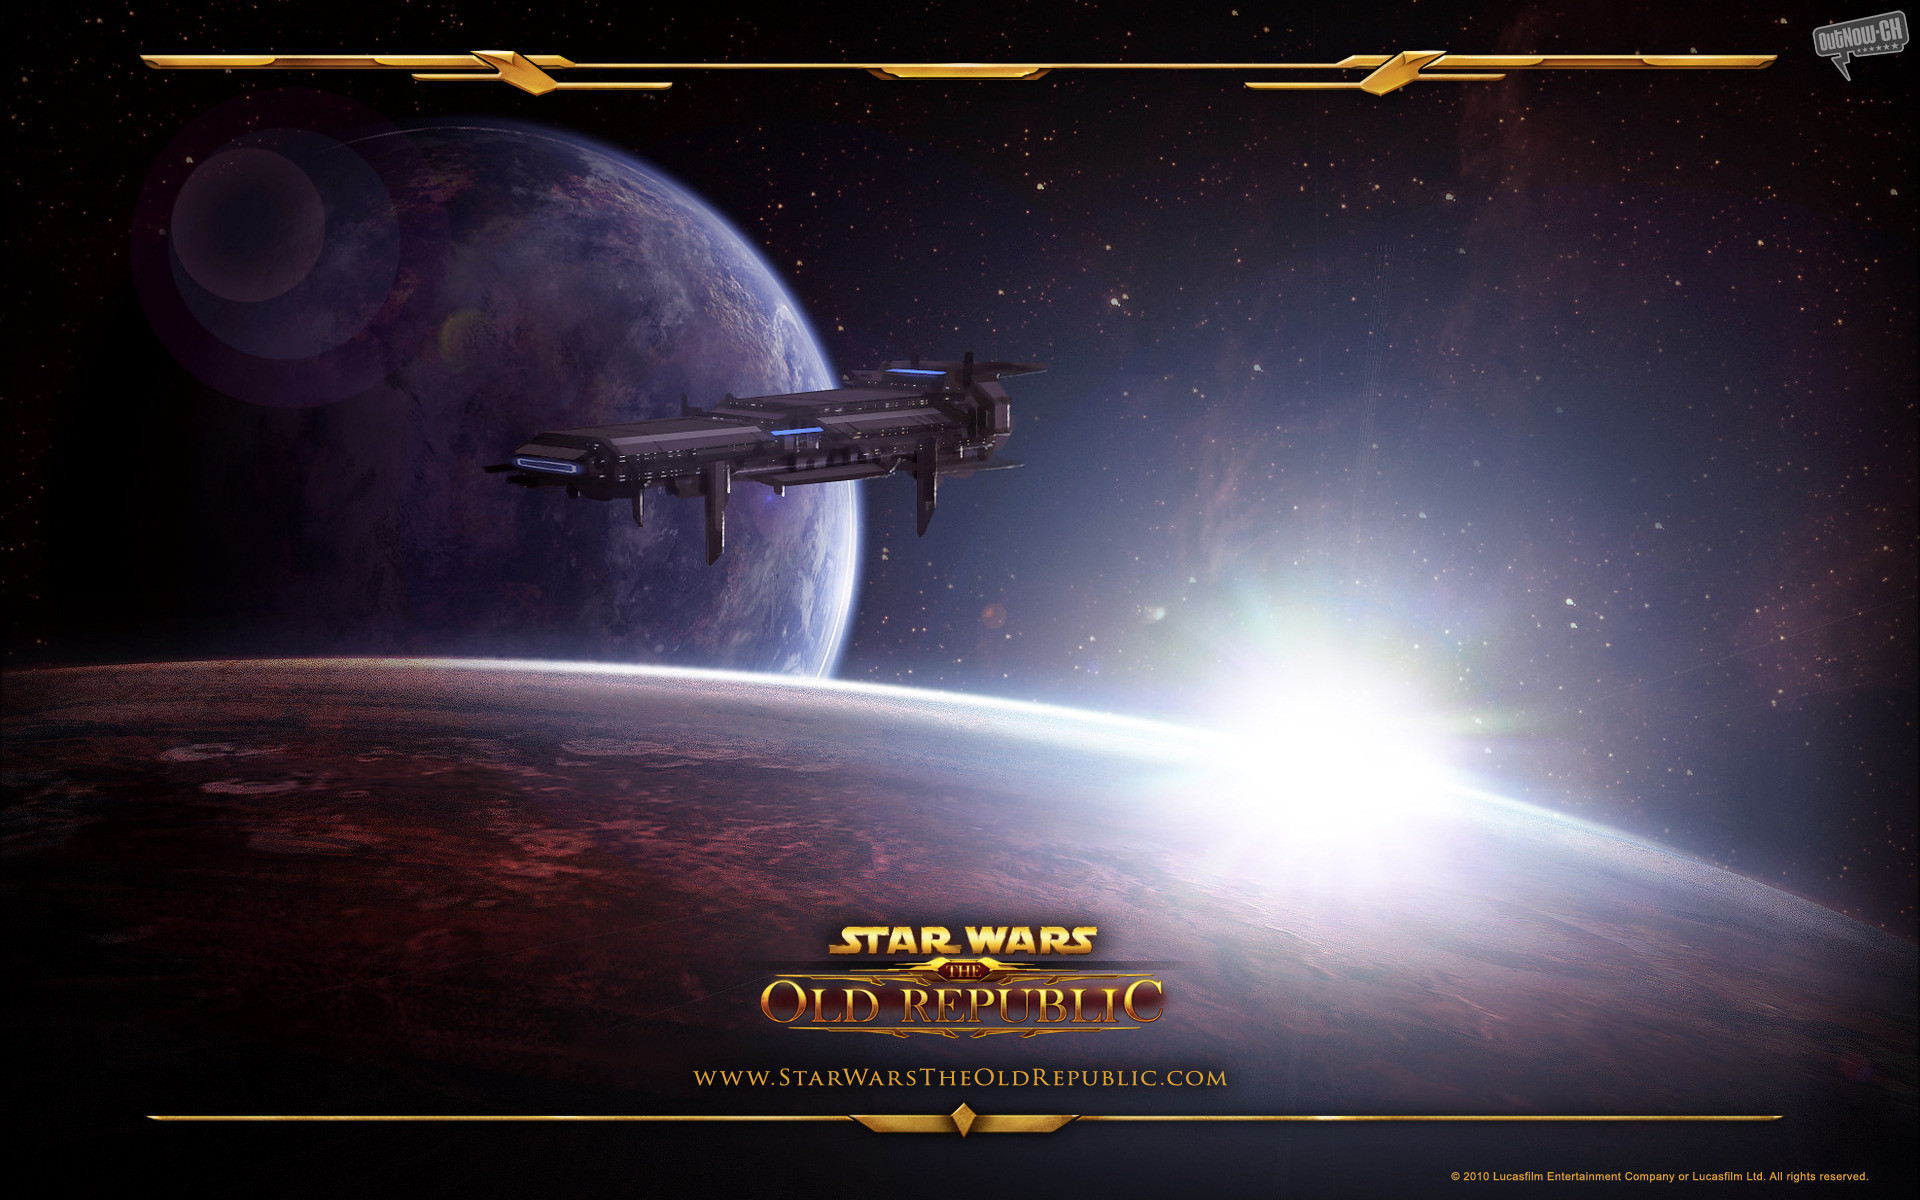 1920x1200 Video Game - Star Wars: The Old Republic Game Star Wars Republic Spaceship  Planet Space